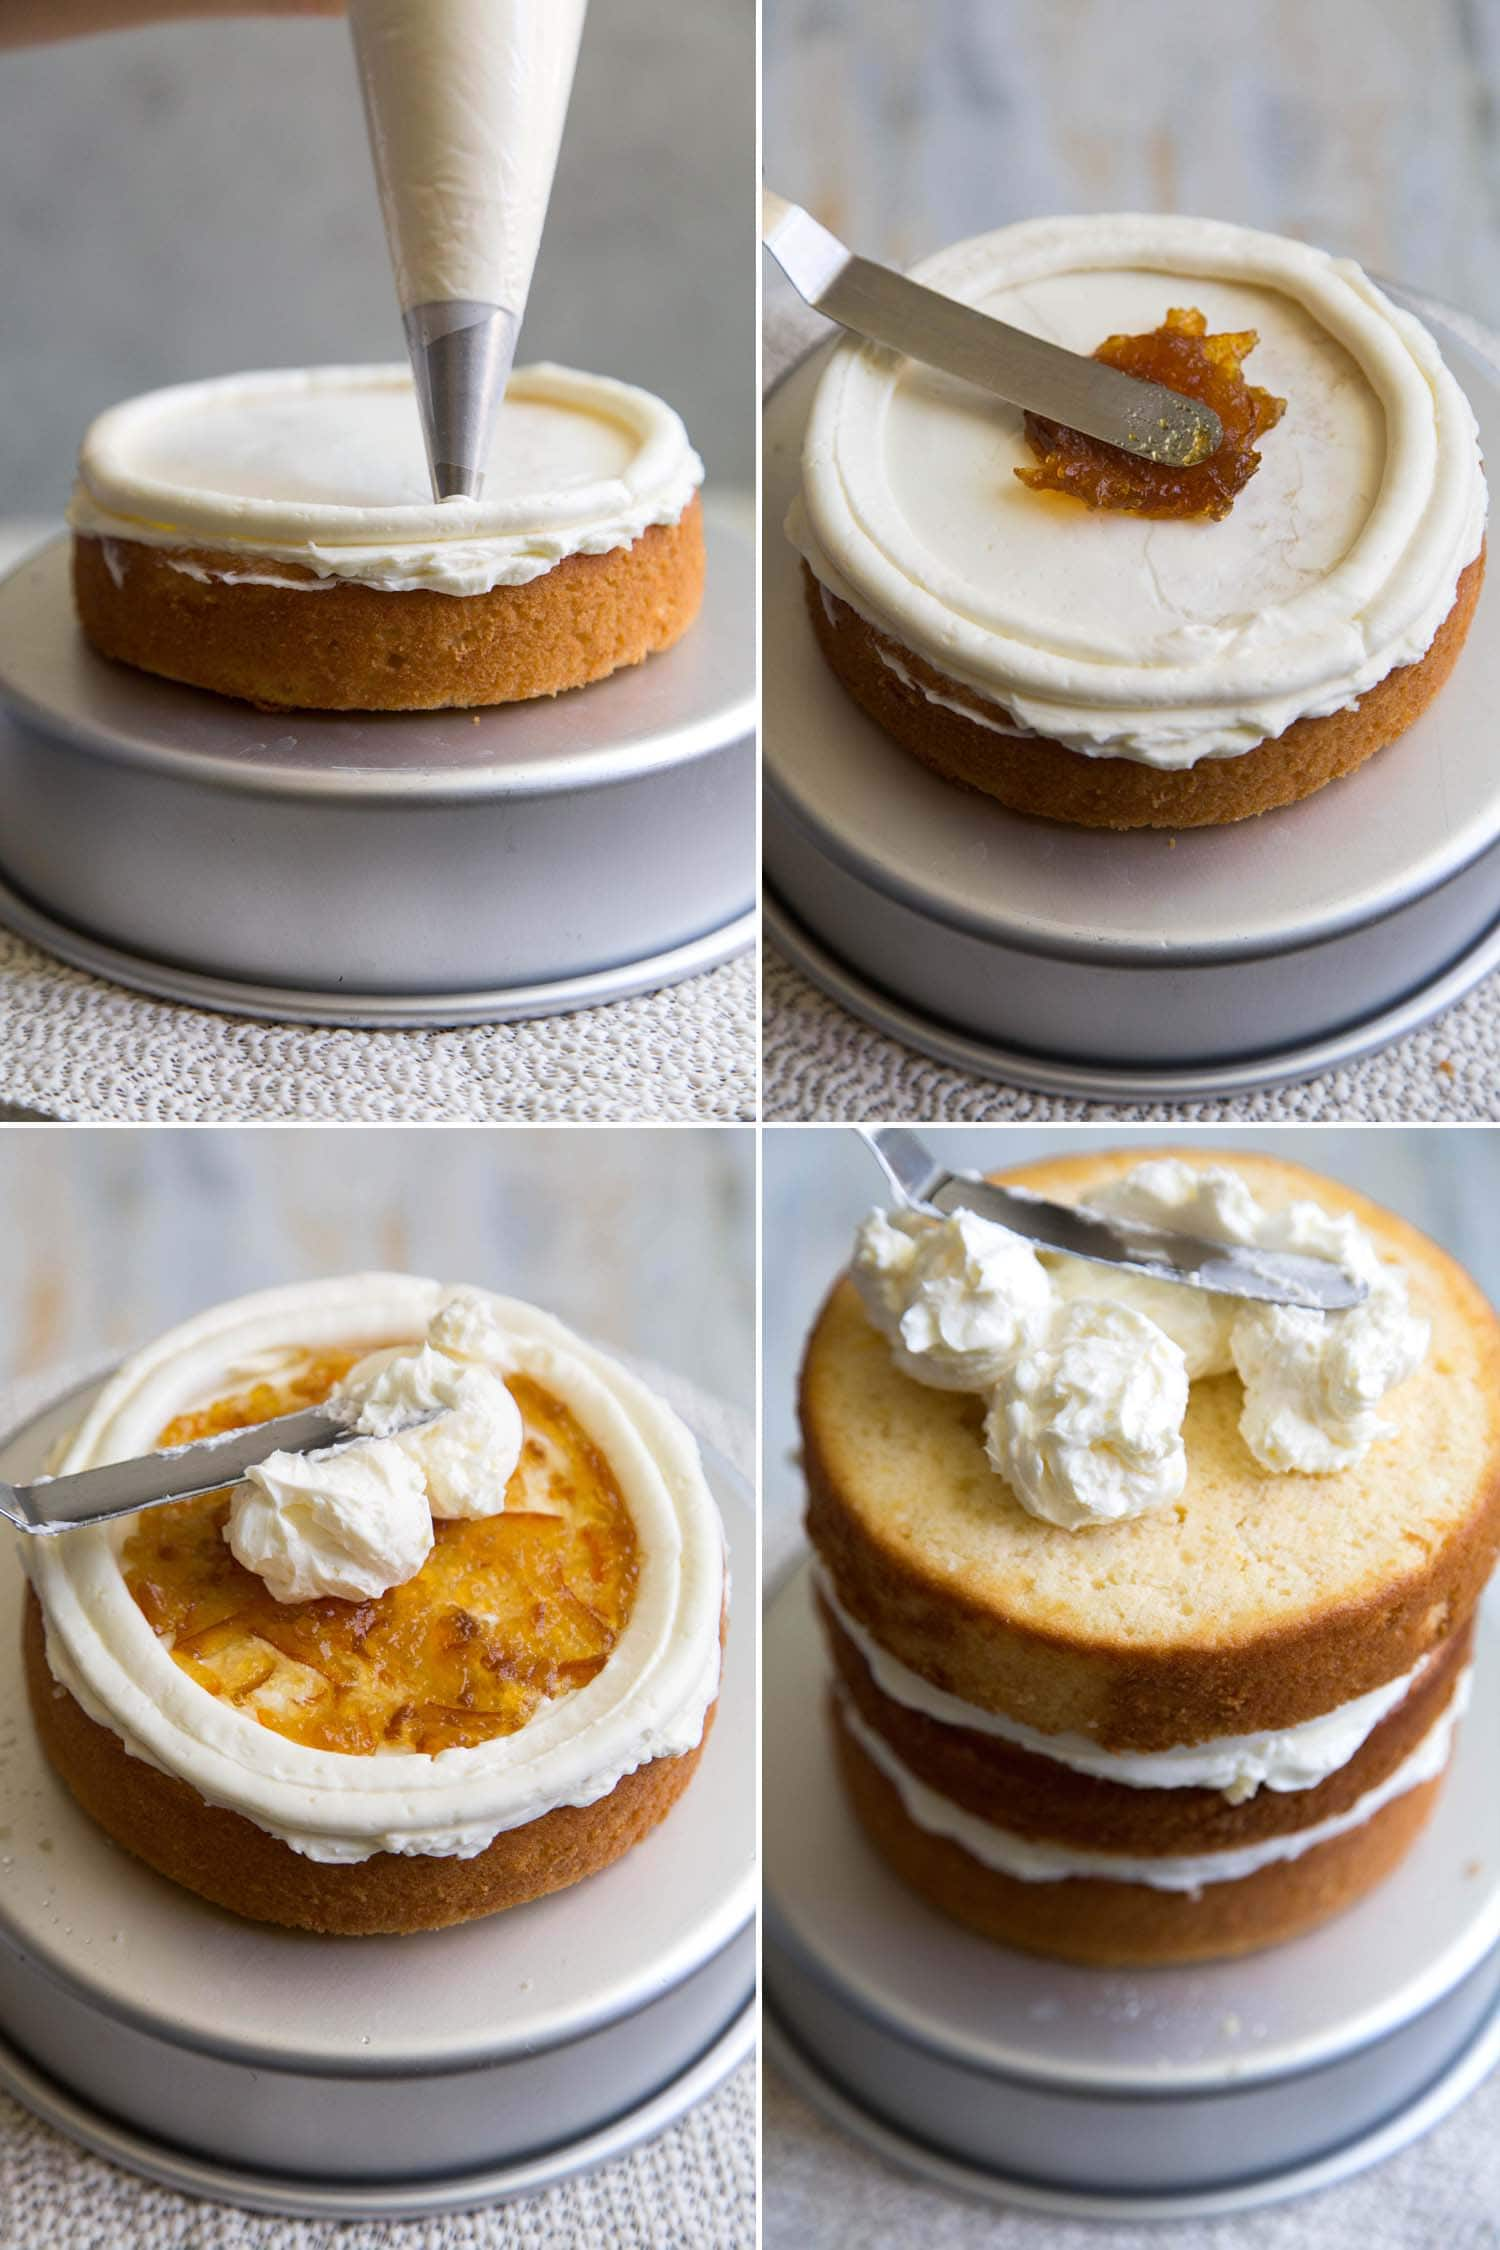 Ginger Grapefruit Layer Cake